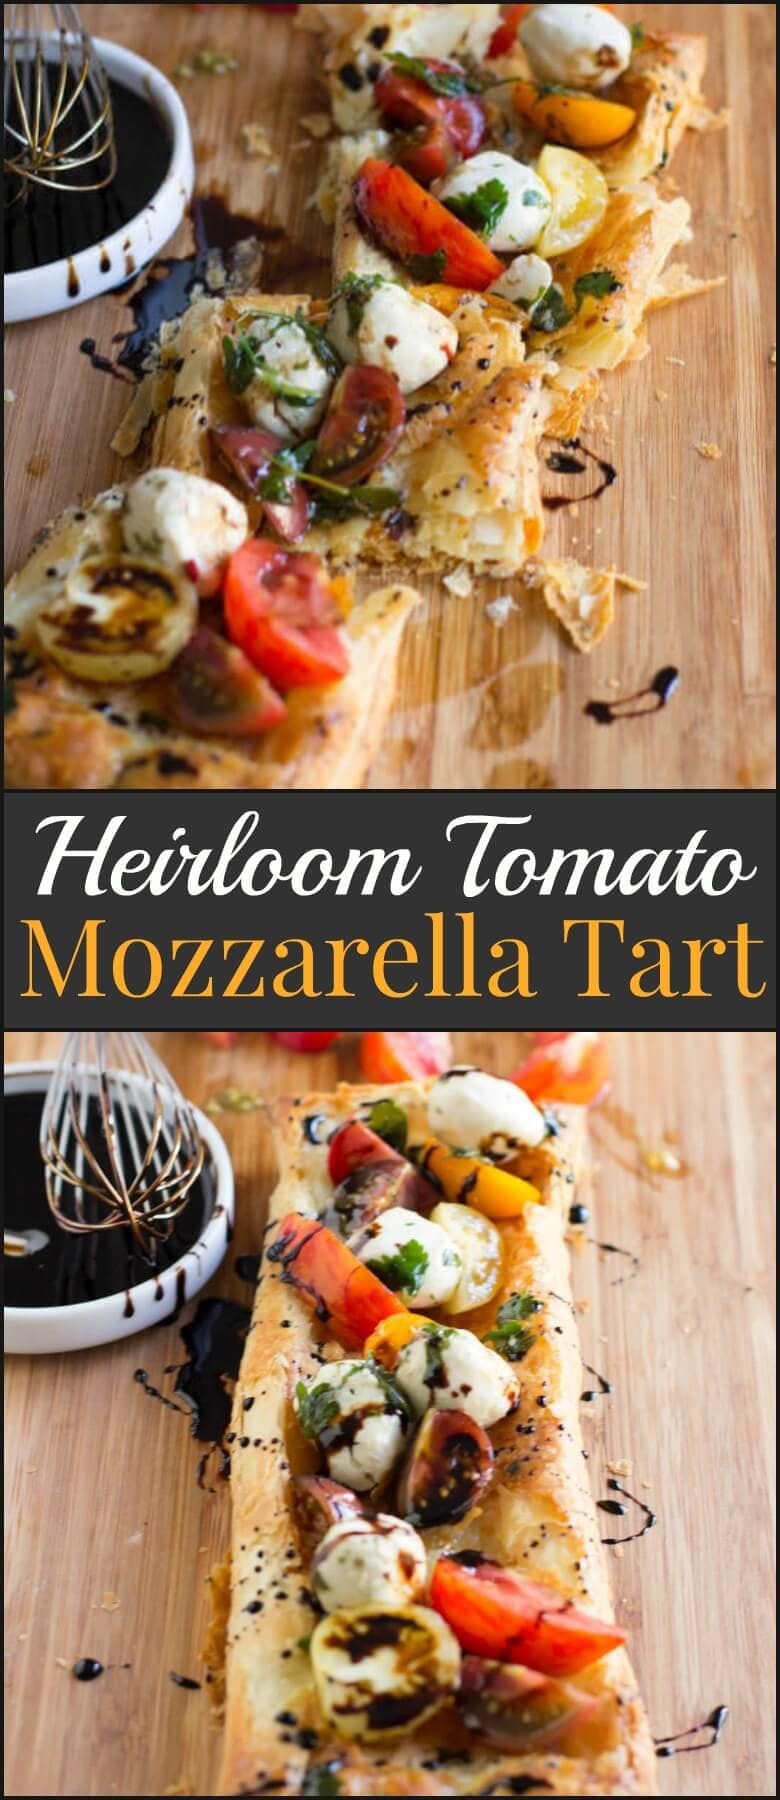 This heirloom tomato and mozzarella tart is so easy to make even the kids can help out. It looks gorgeous, tastes even better and is a no fuss recipe. ohsweetbasil.com